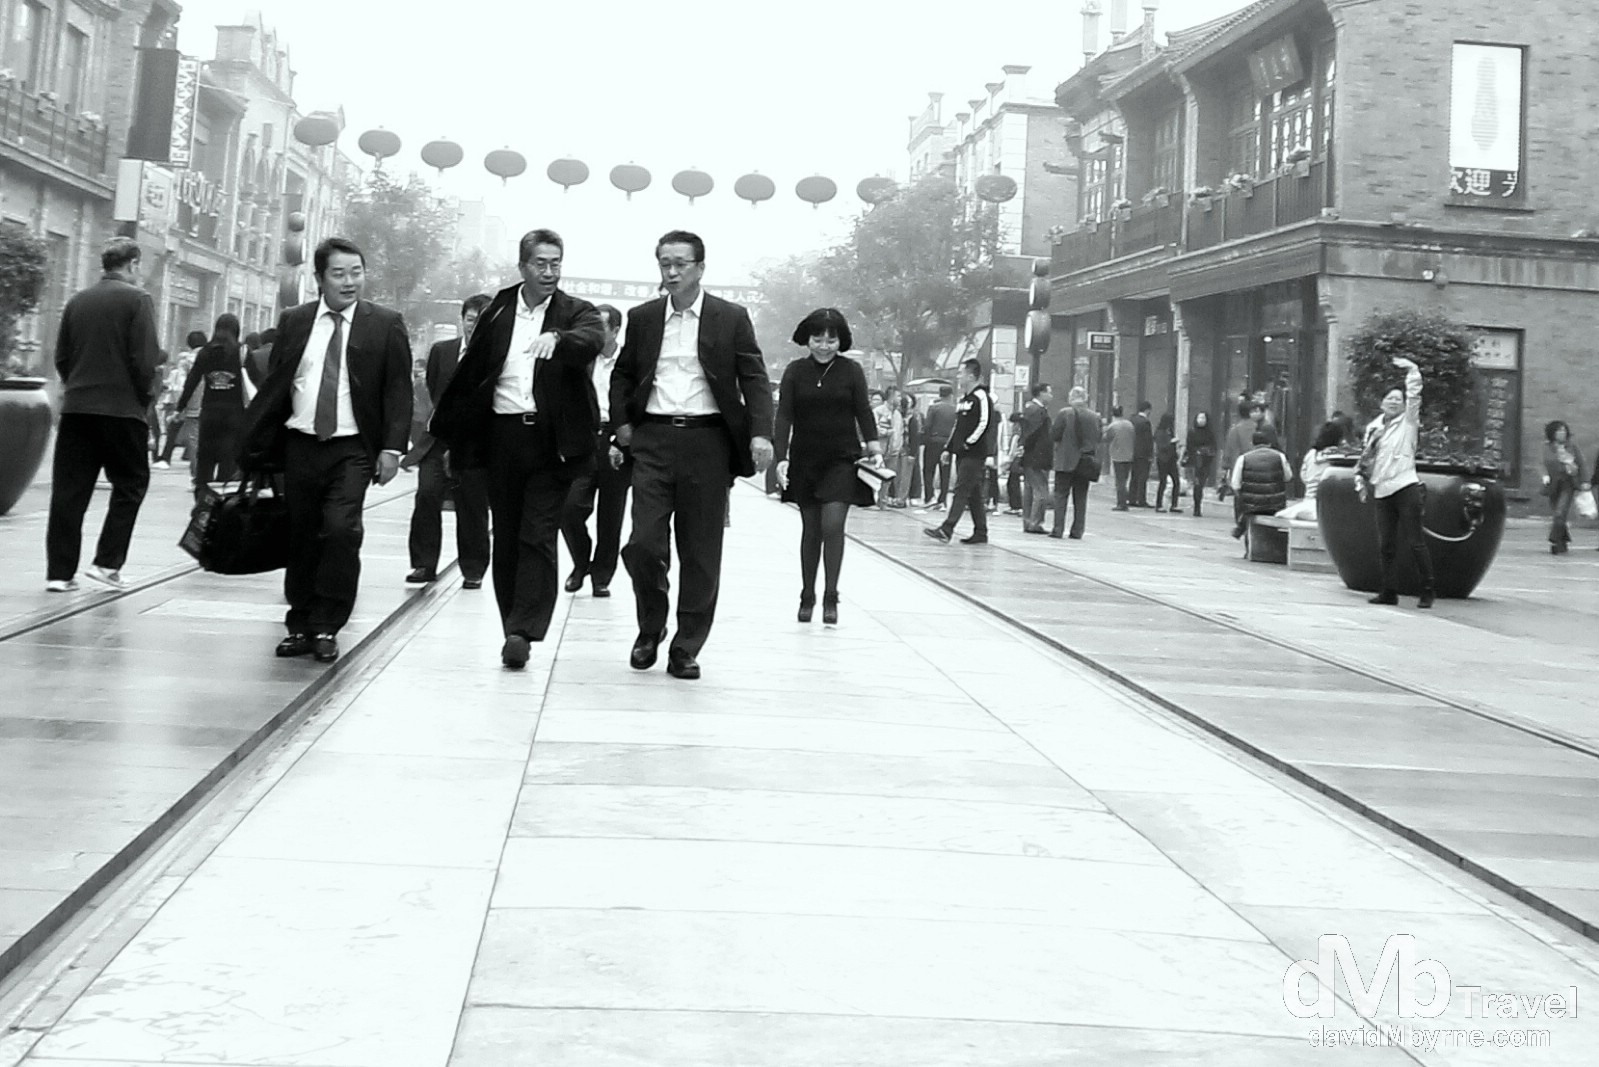 On the march in the Qianmen district of Beijing, China. October 26th 2012.